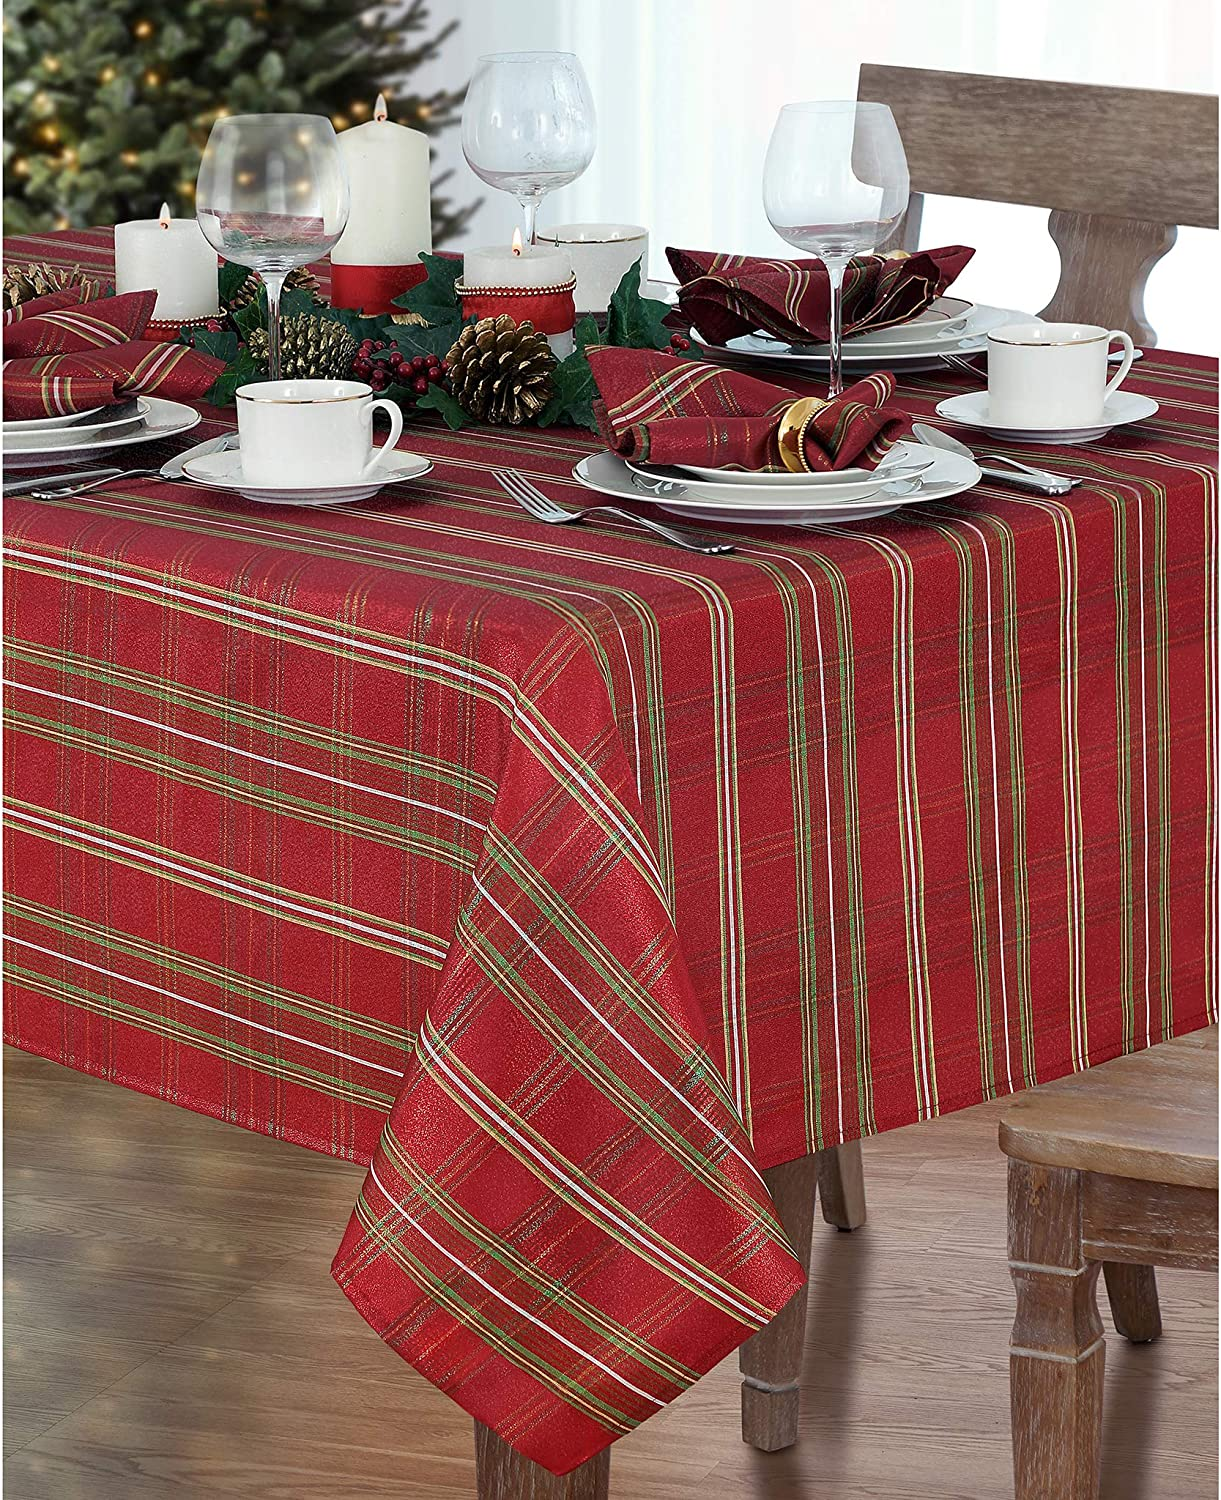 "Elrene Home Fashions Shimmering Plaid Holiday Fabric Tablecloth, 60"" x 120"", Red"